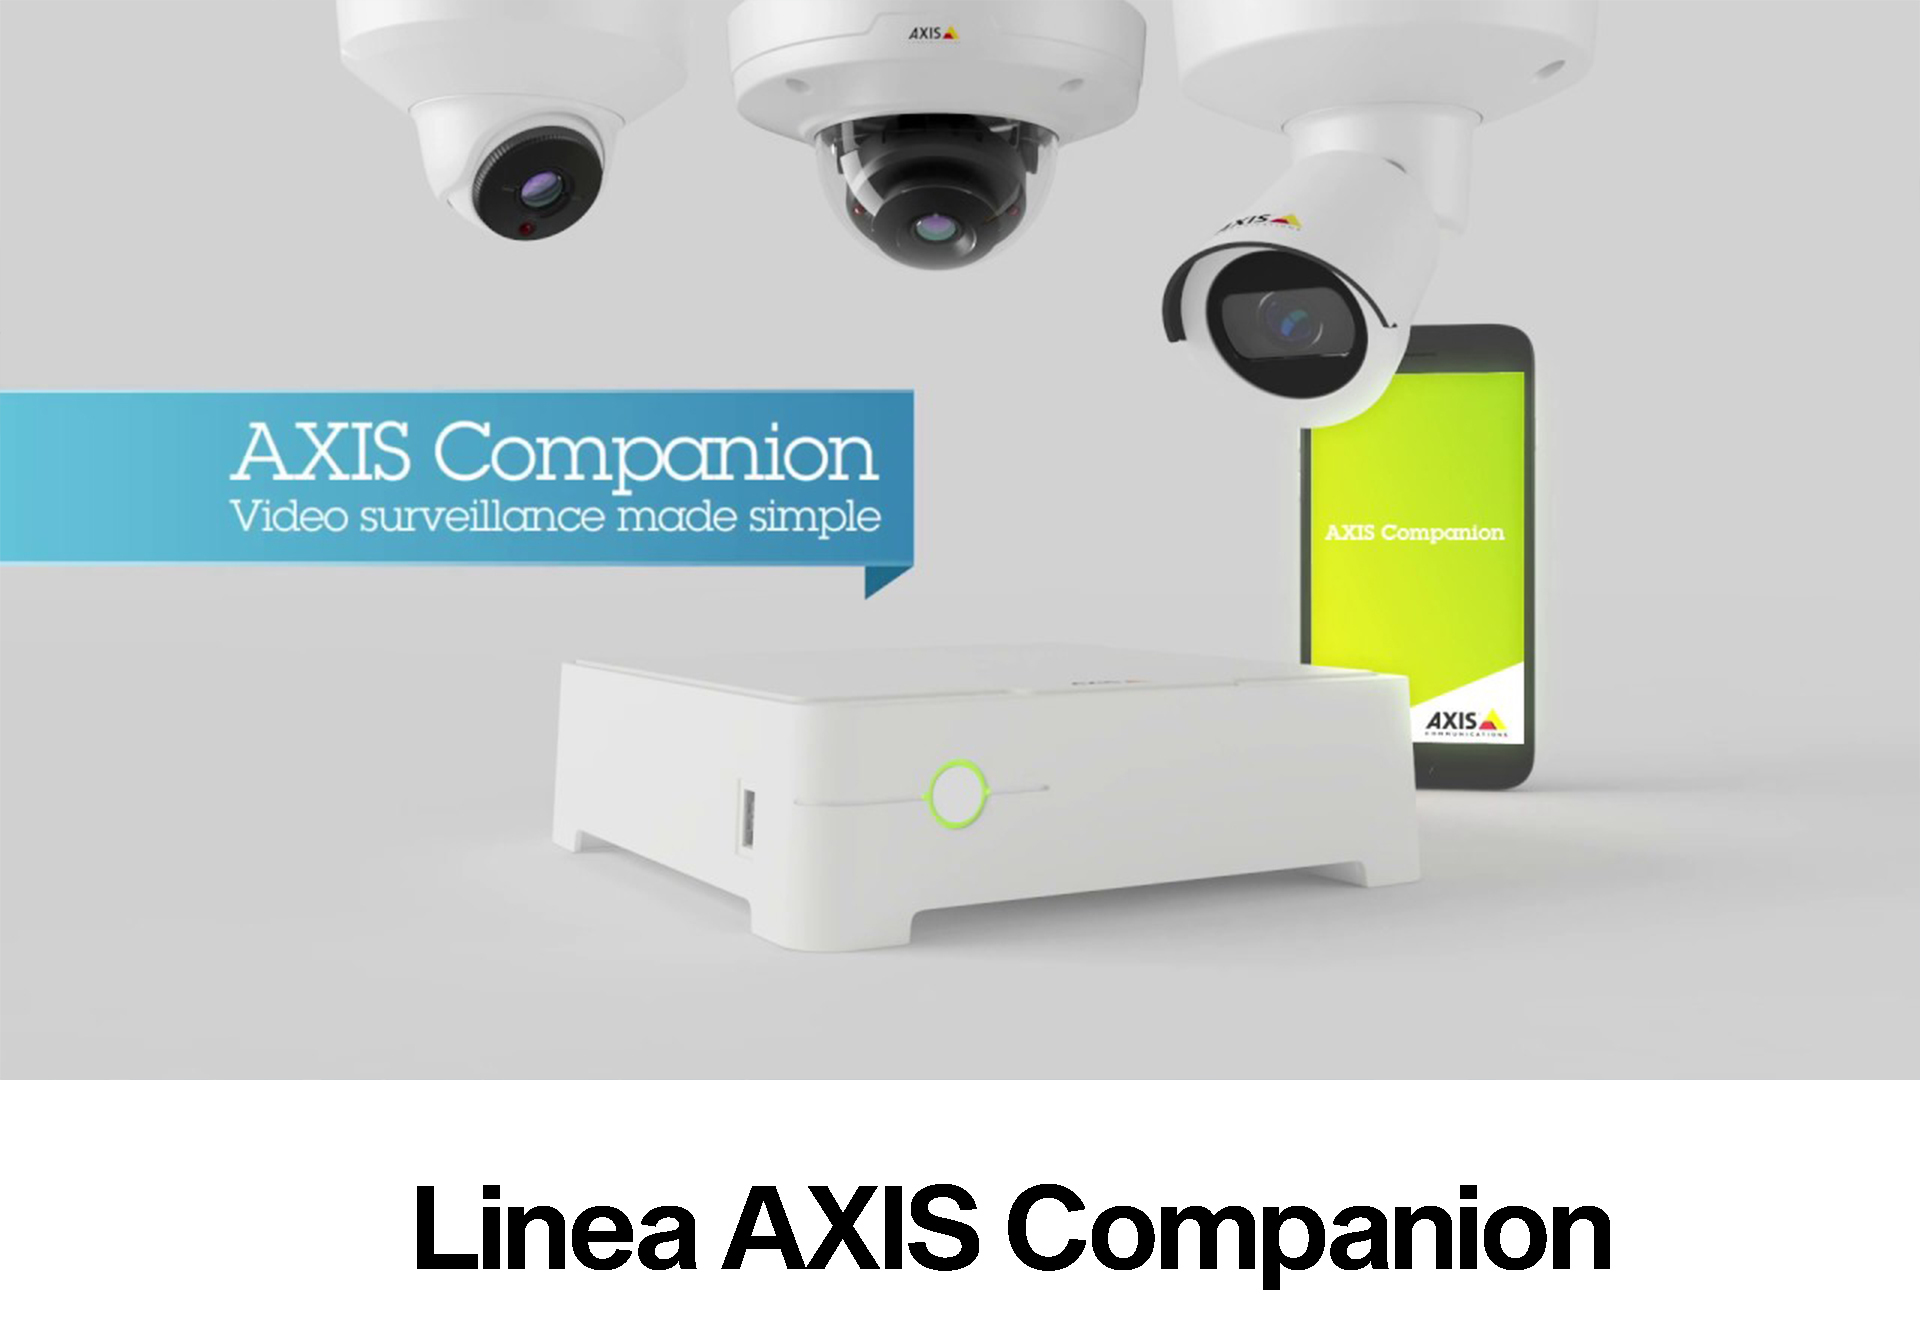 Linea AXIS Companion